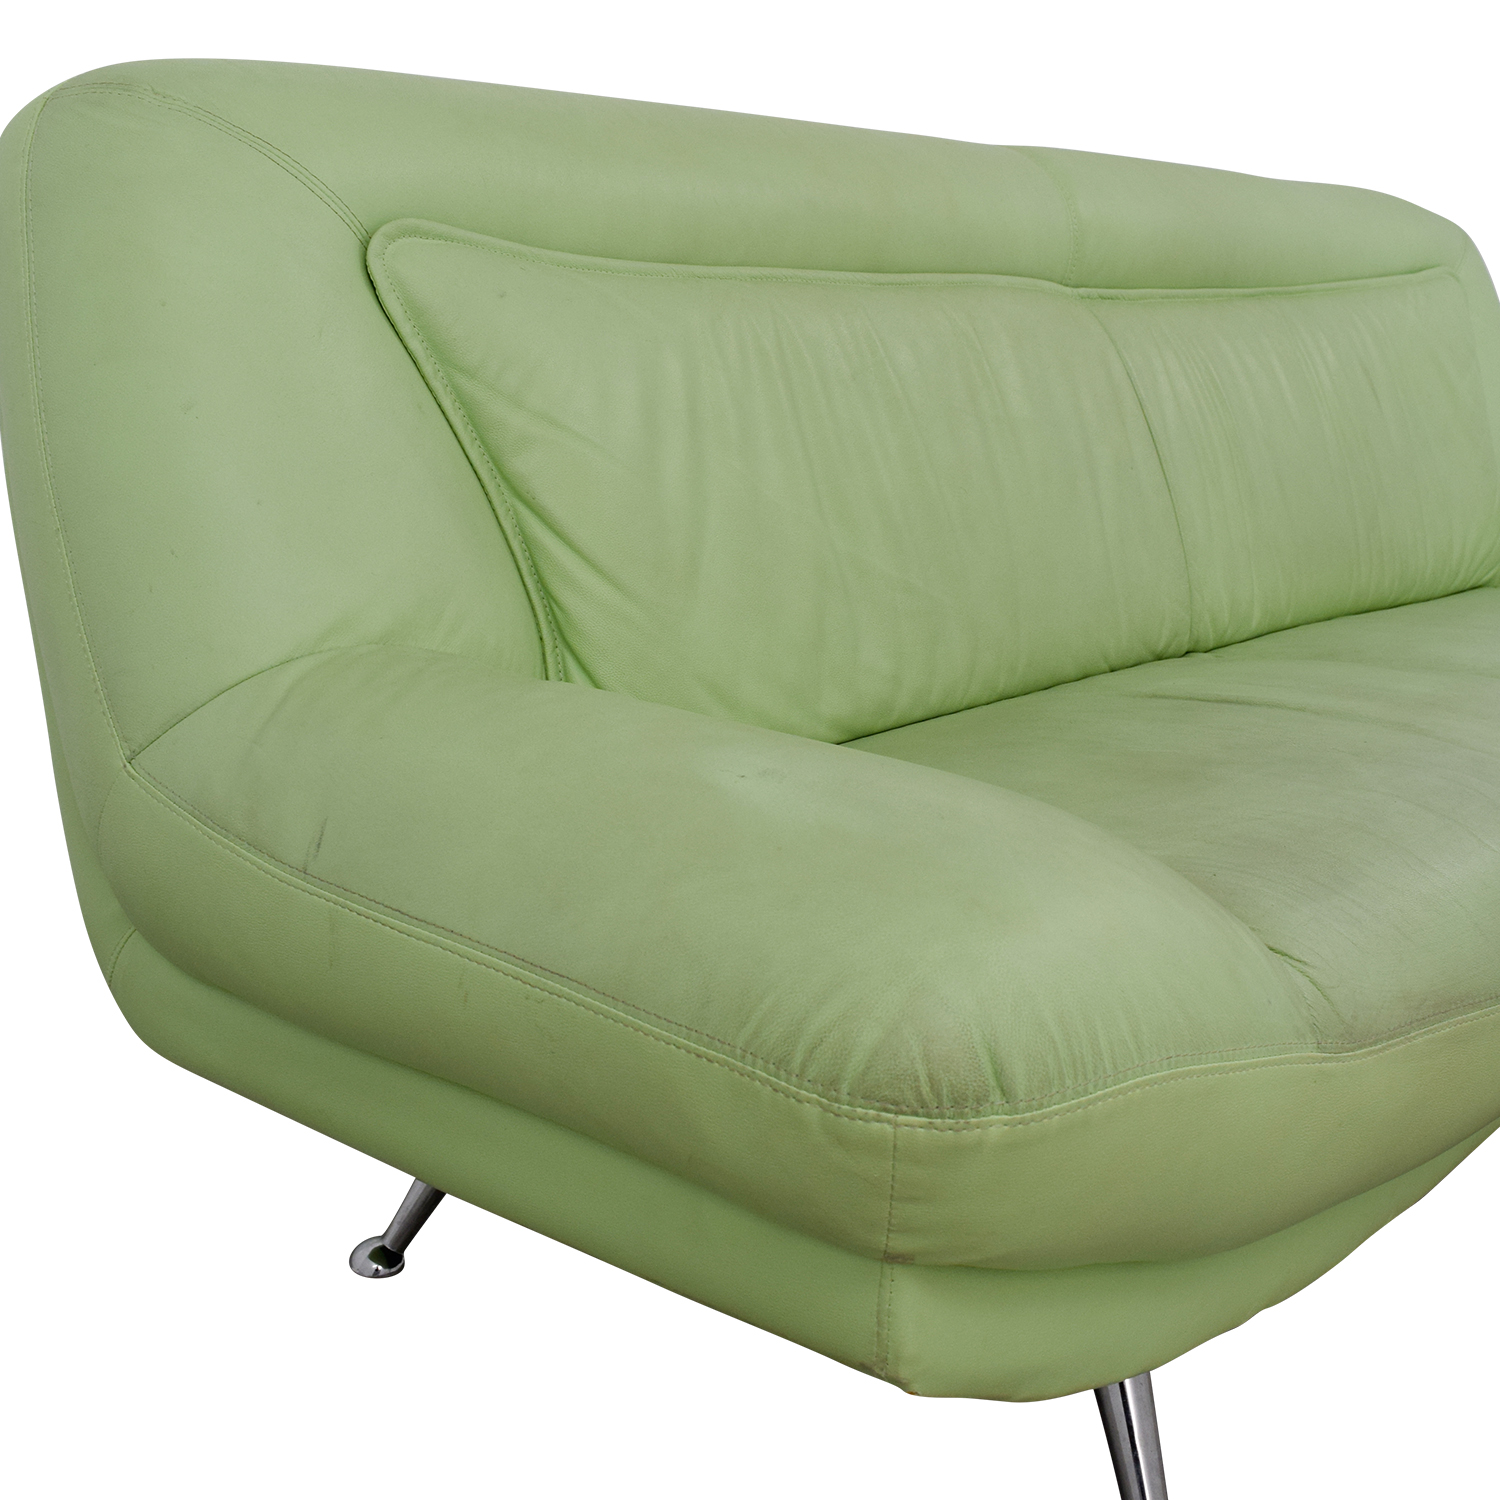 40% OFF Italian Mint Green Leather Two Cushion Sofa Sofas